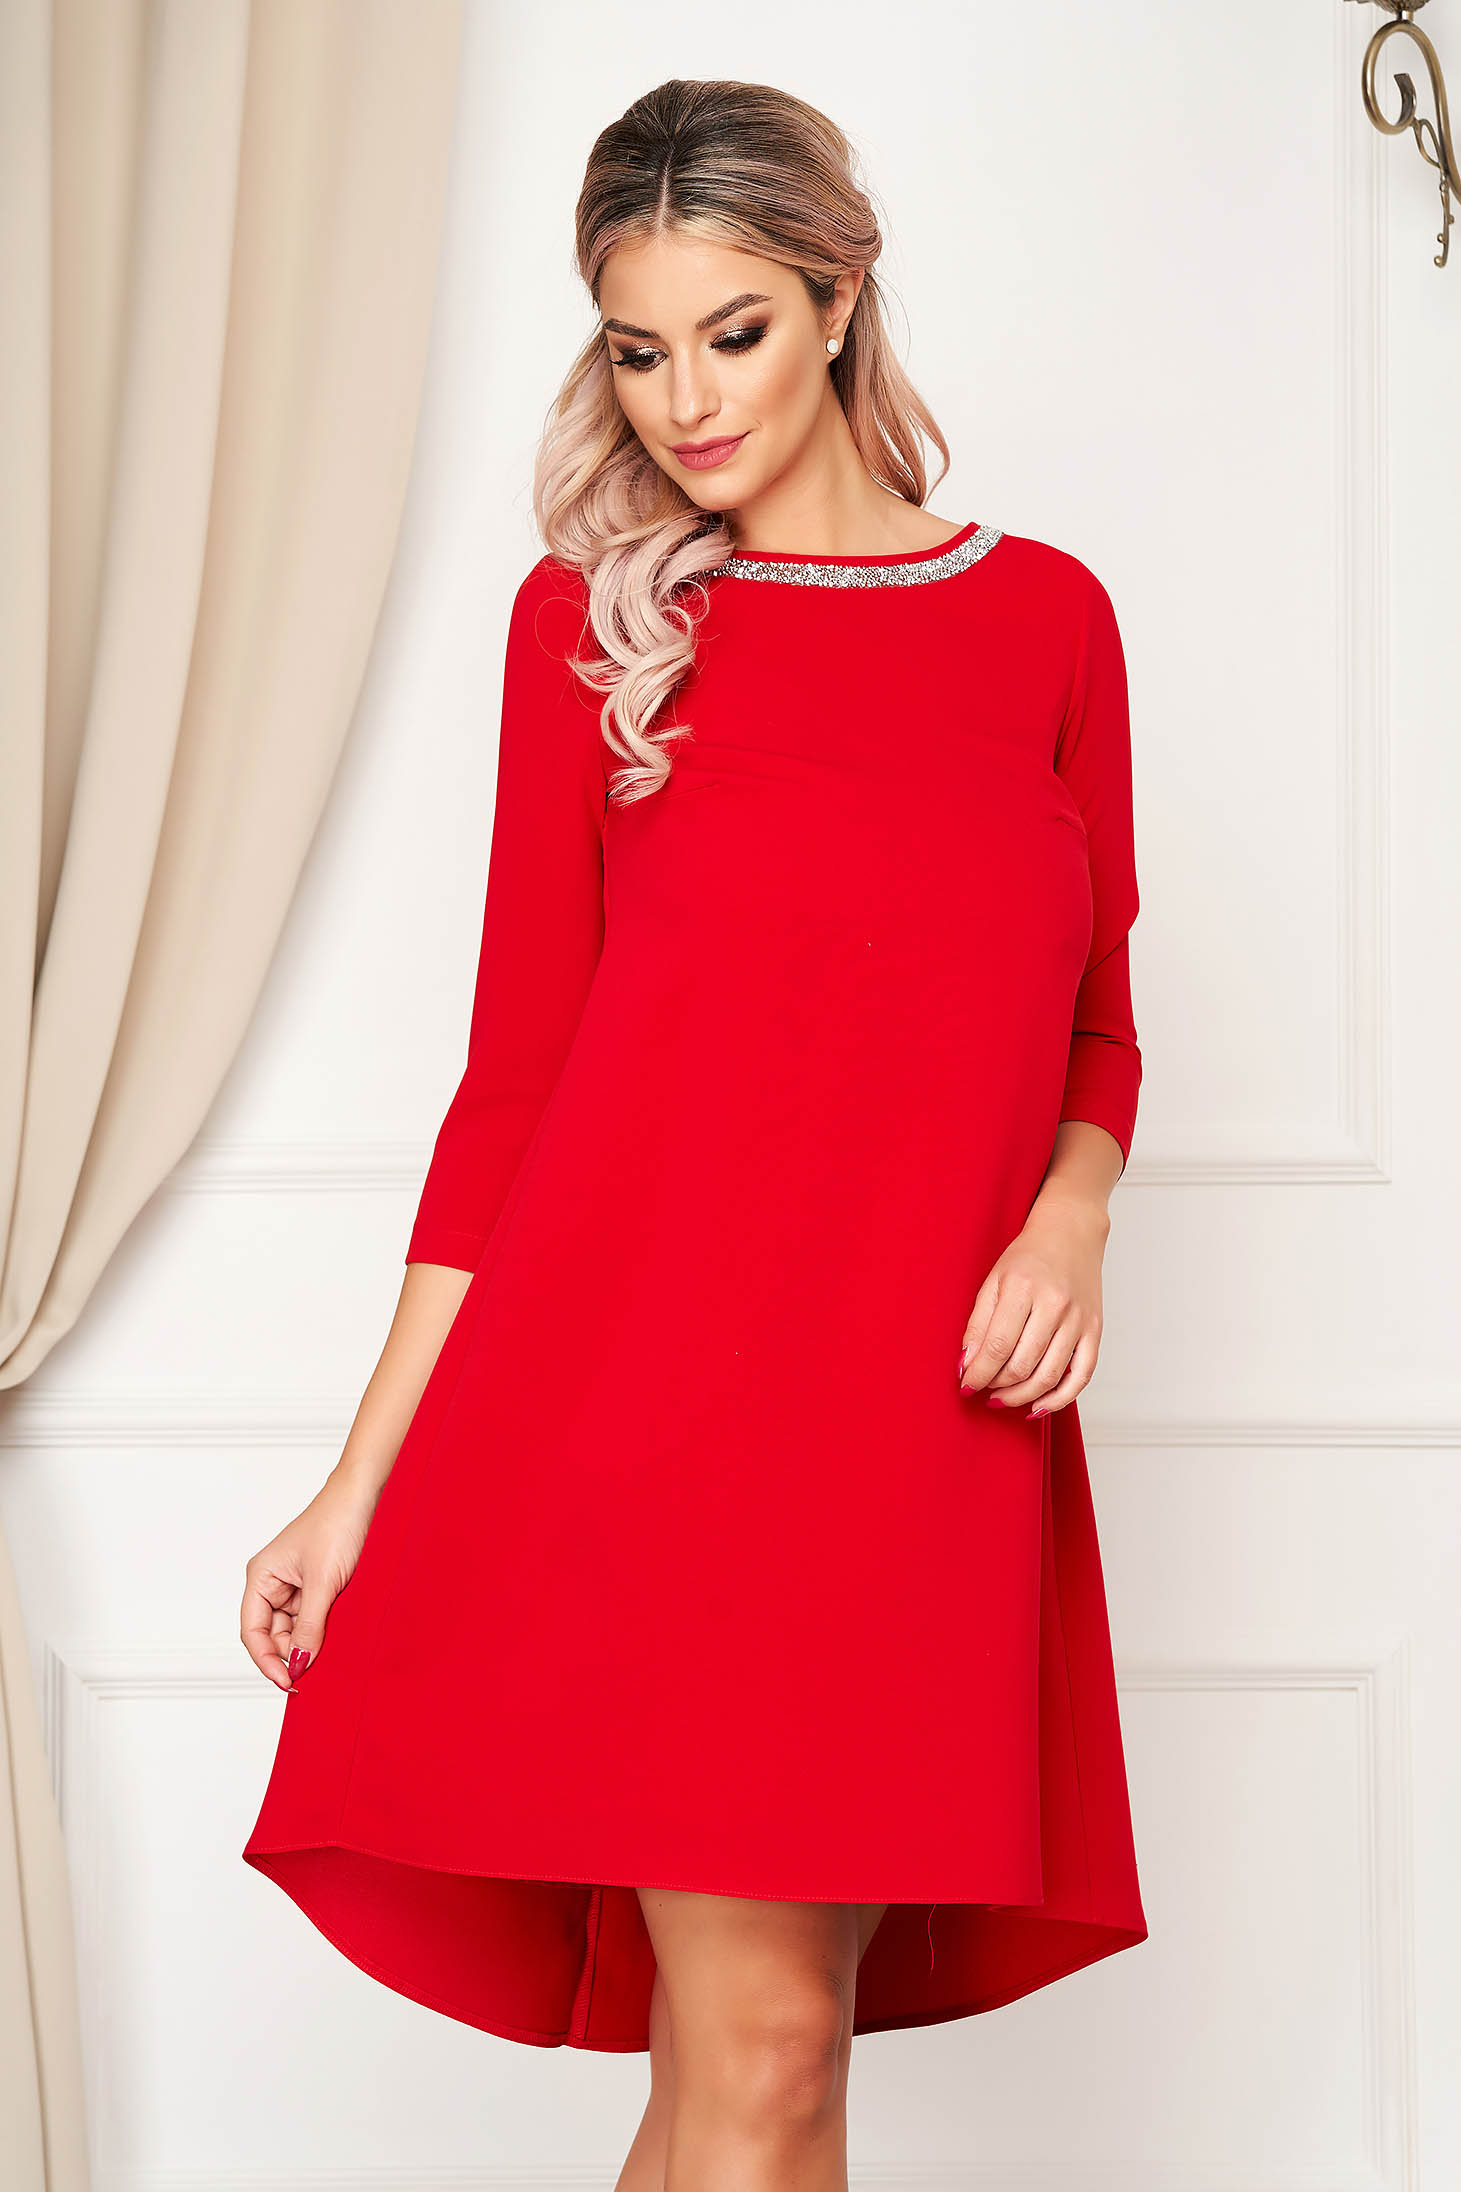 Elegant dress short cut red StarShinerS cloth with 3/4 sleeves